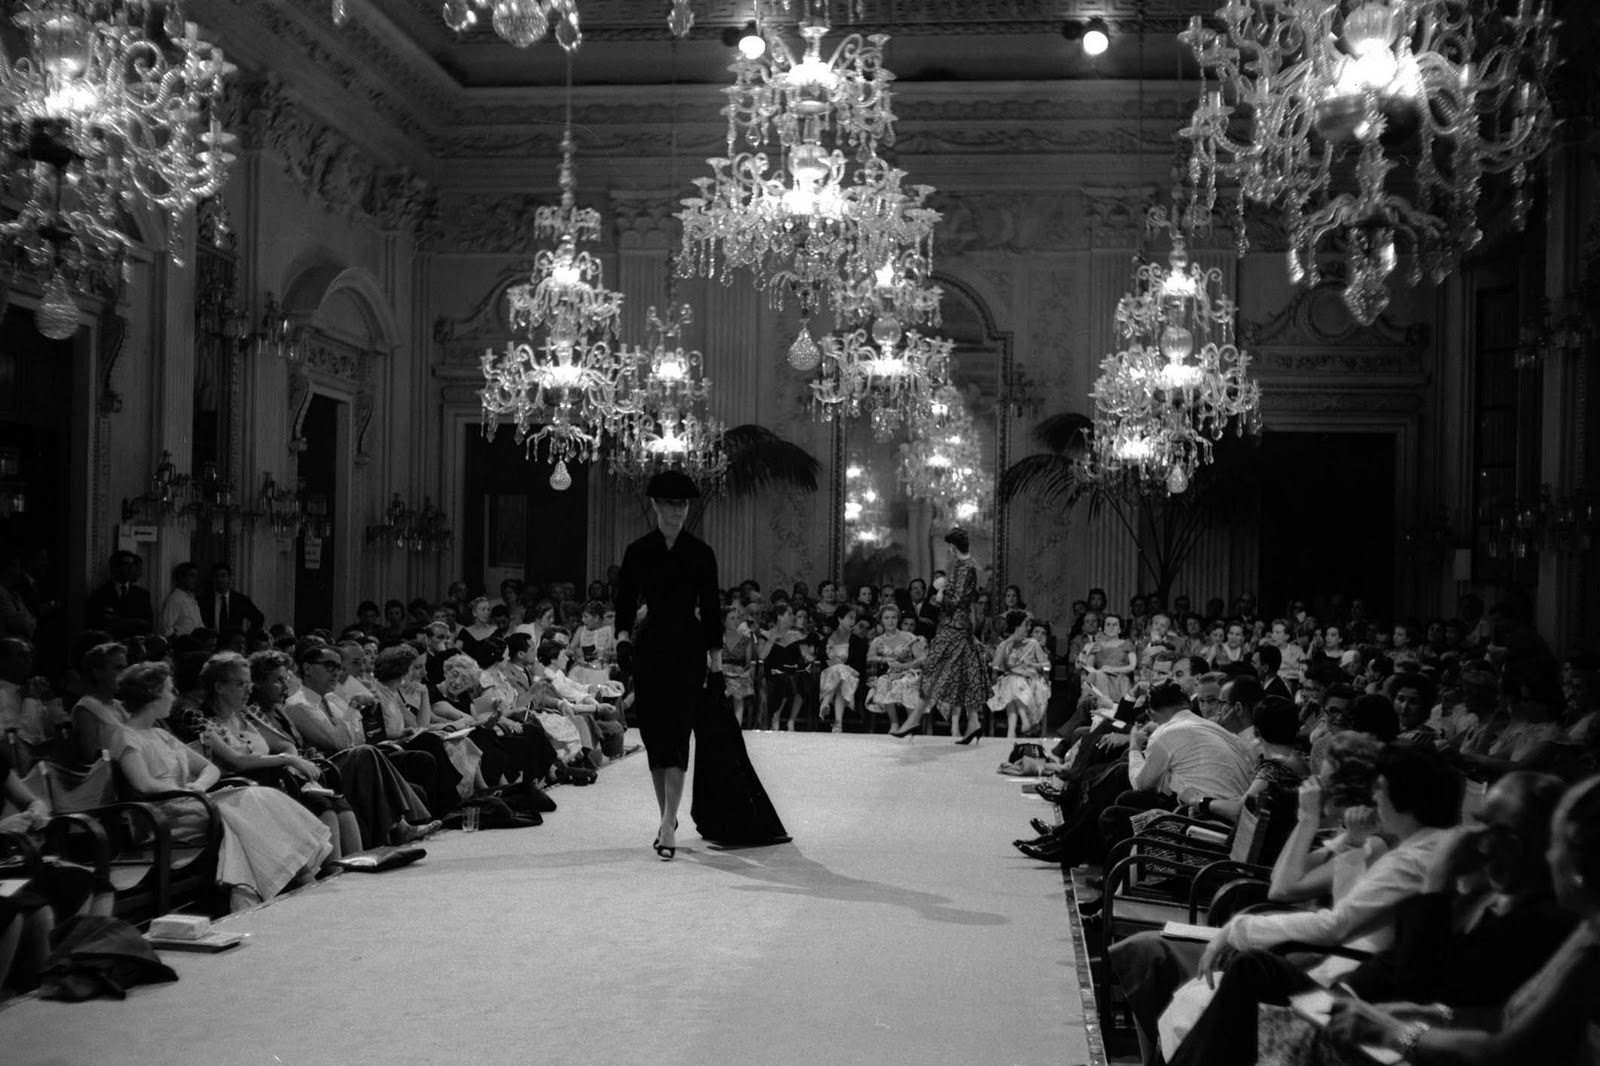 the-glamour-of-italian-fashion-sala-bianca-palazzo-pitti-florence/cool-chic-style-fashion